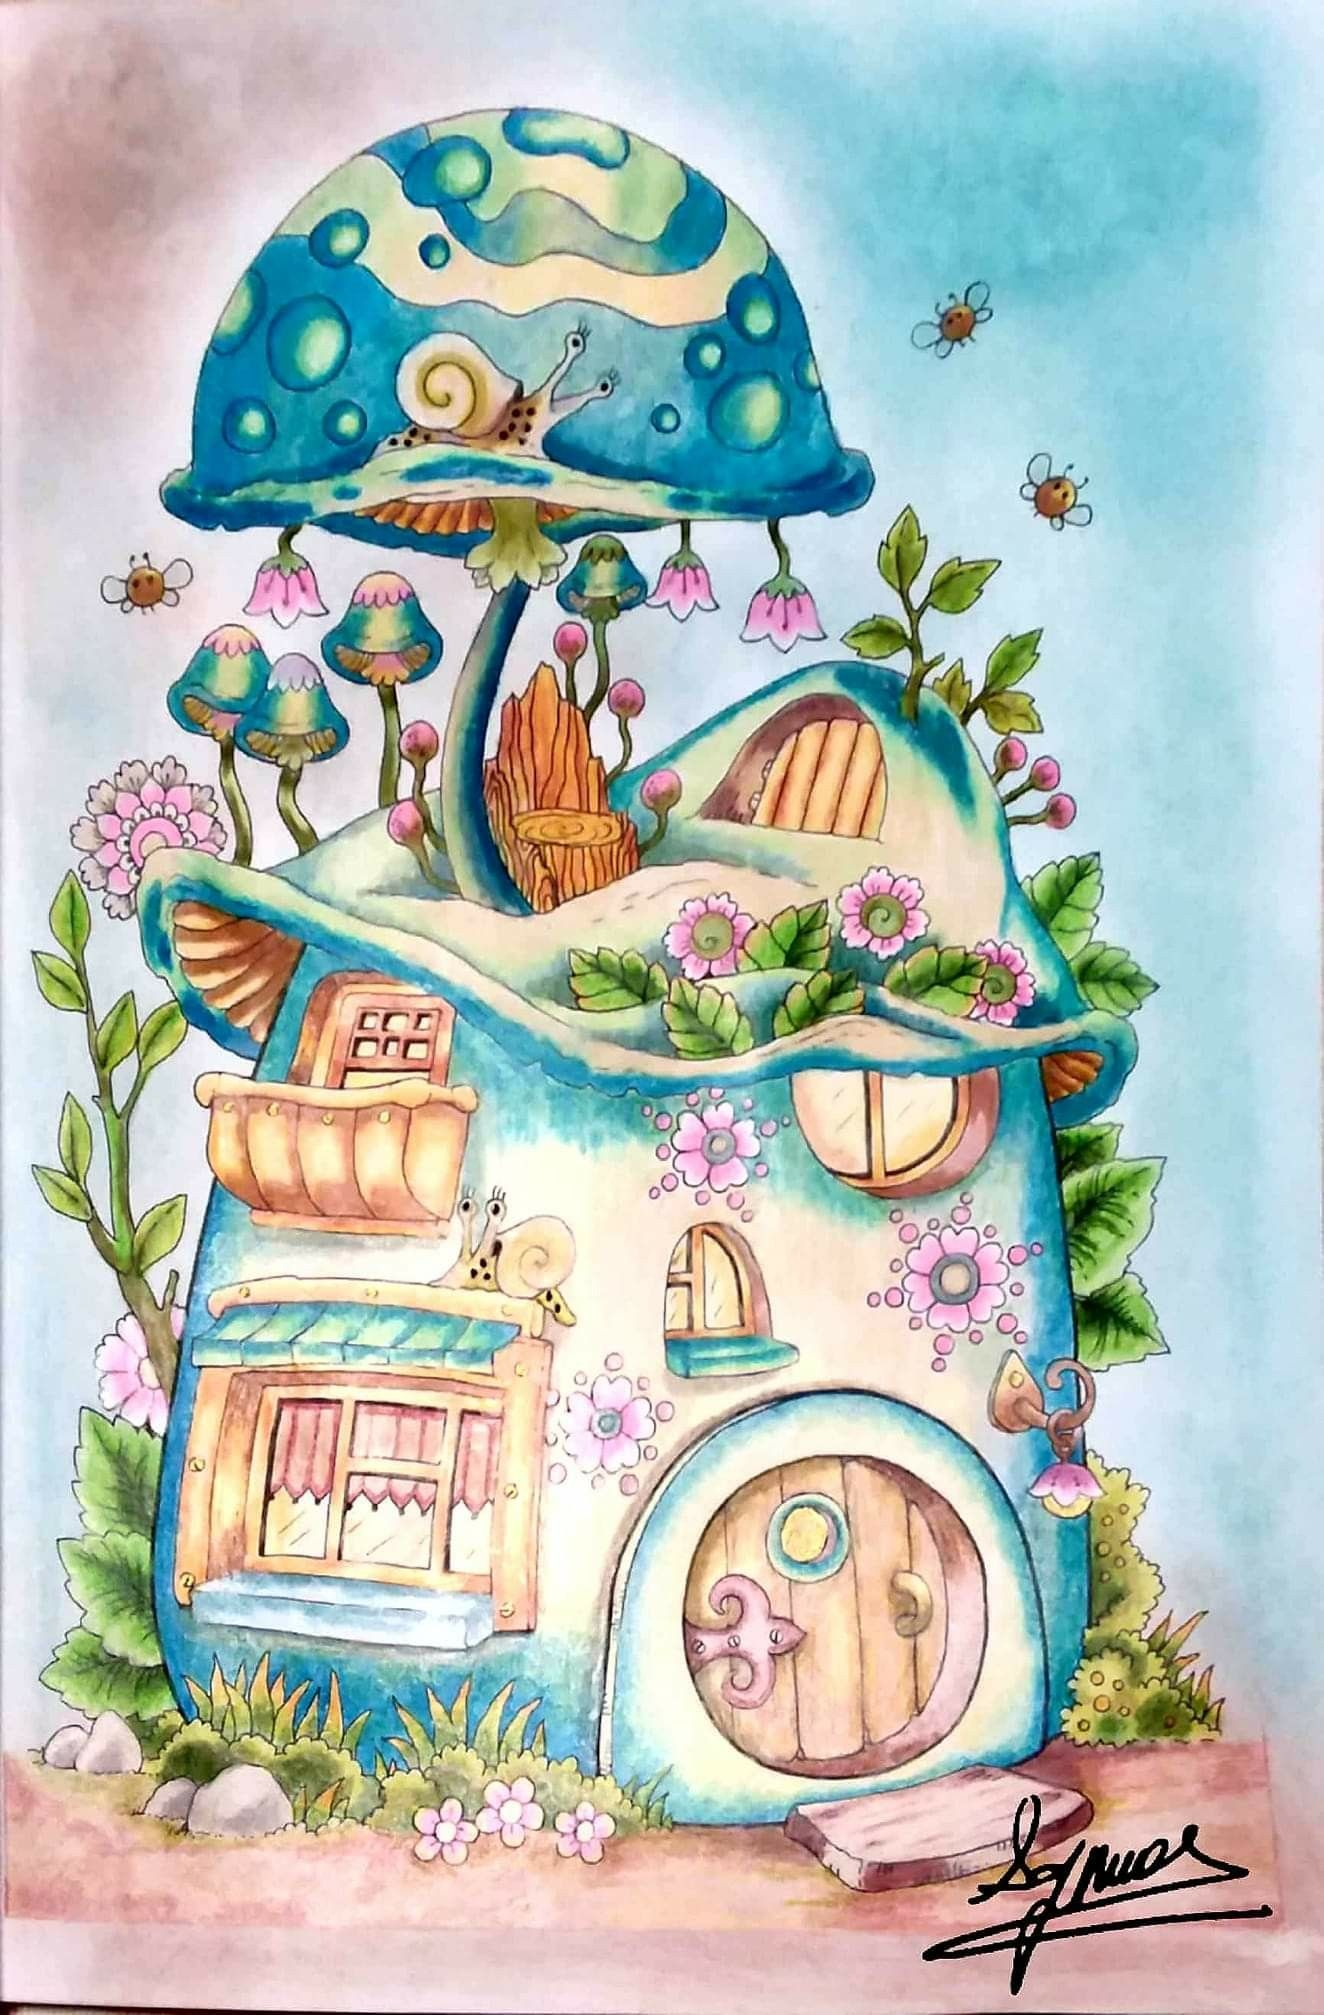 Pin By Bobbie King On Drawings Coloring Book Art Whimsical Art Art Drawings For Kids